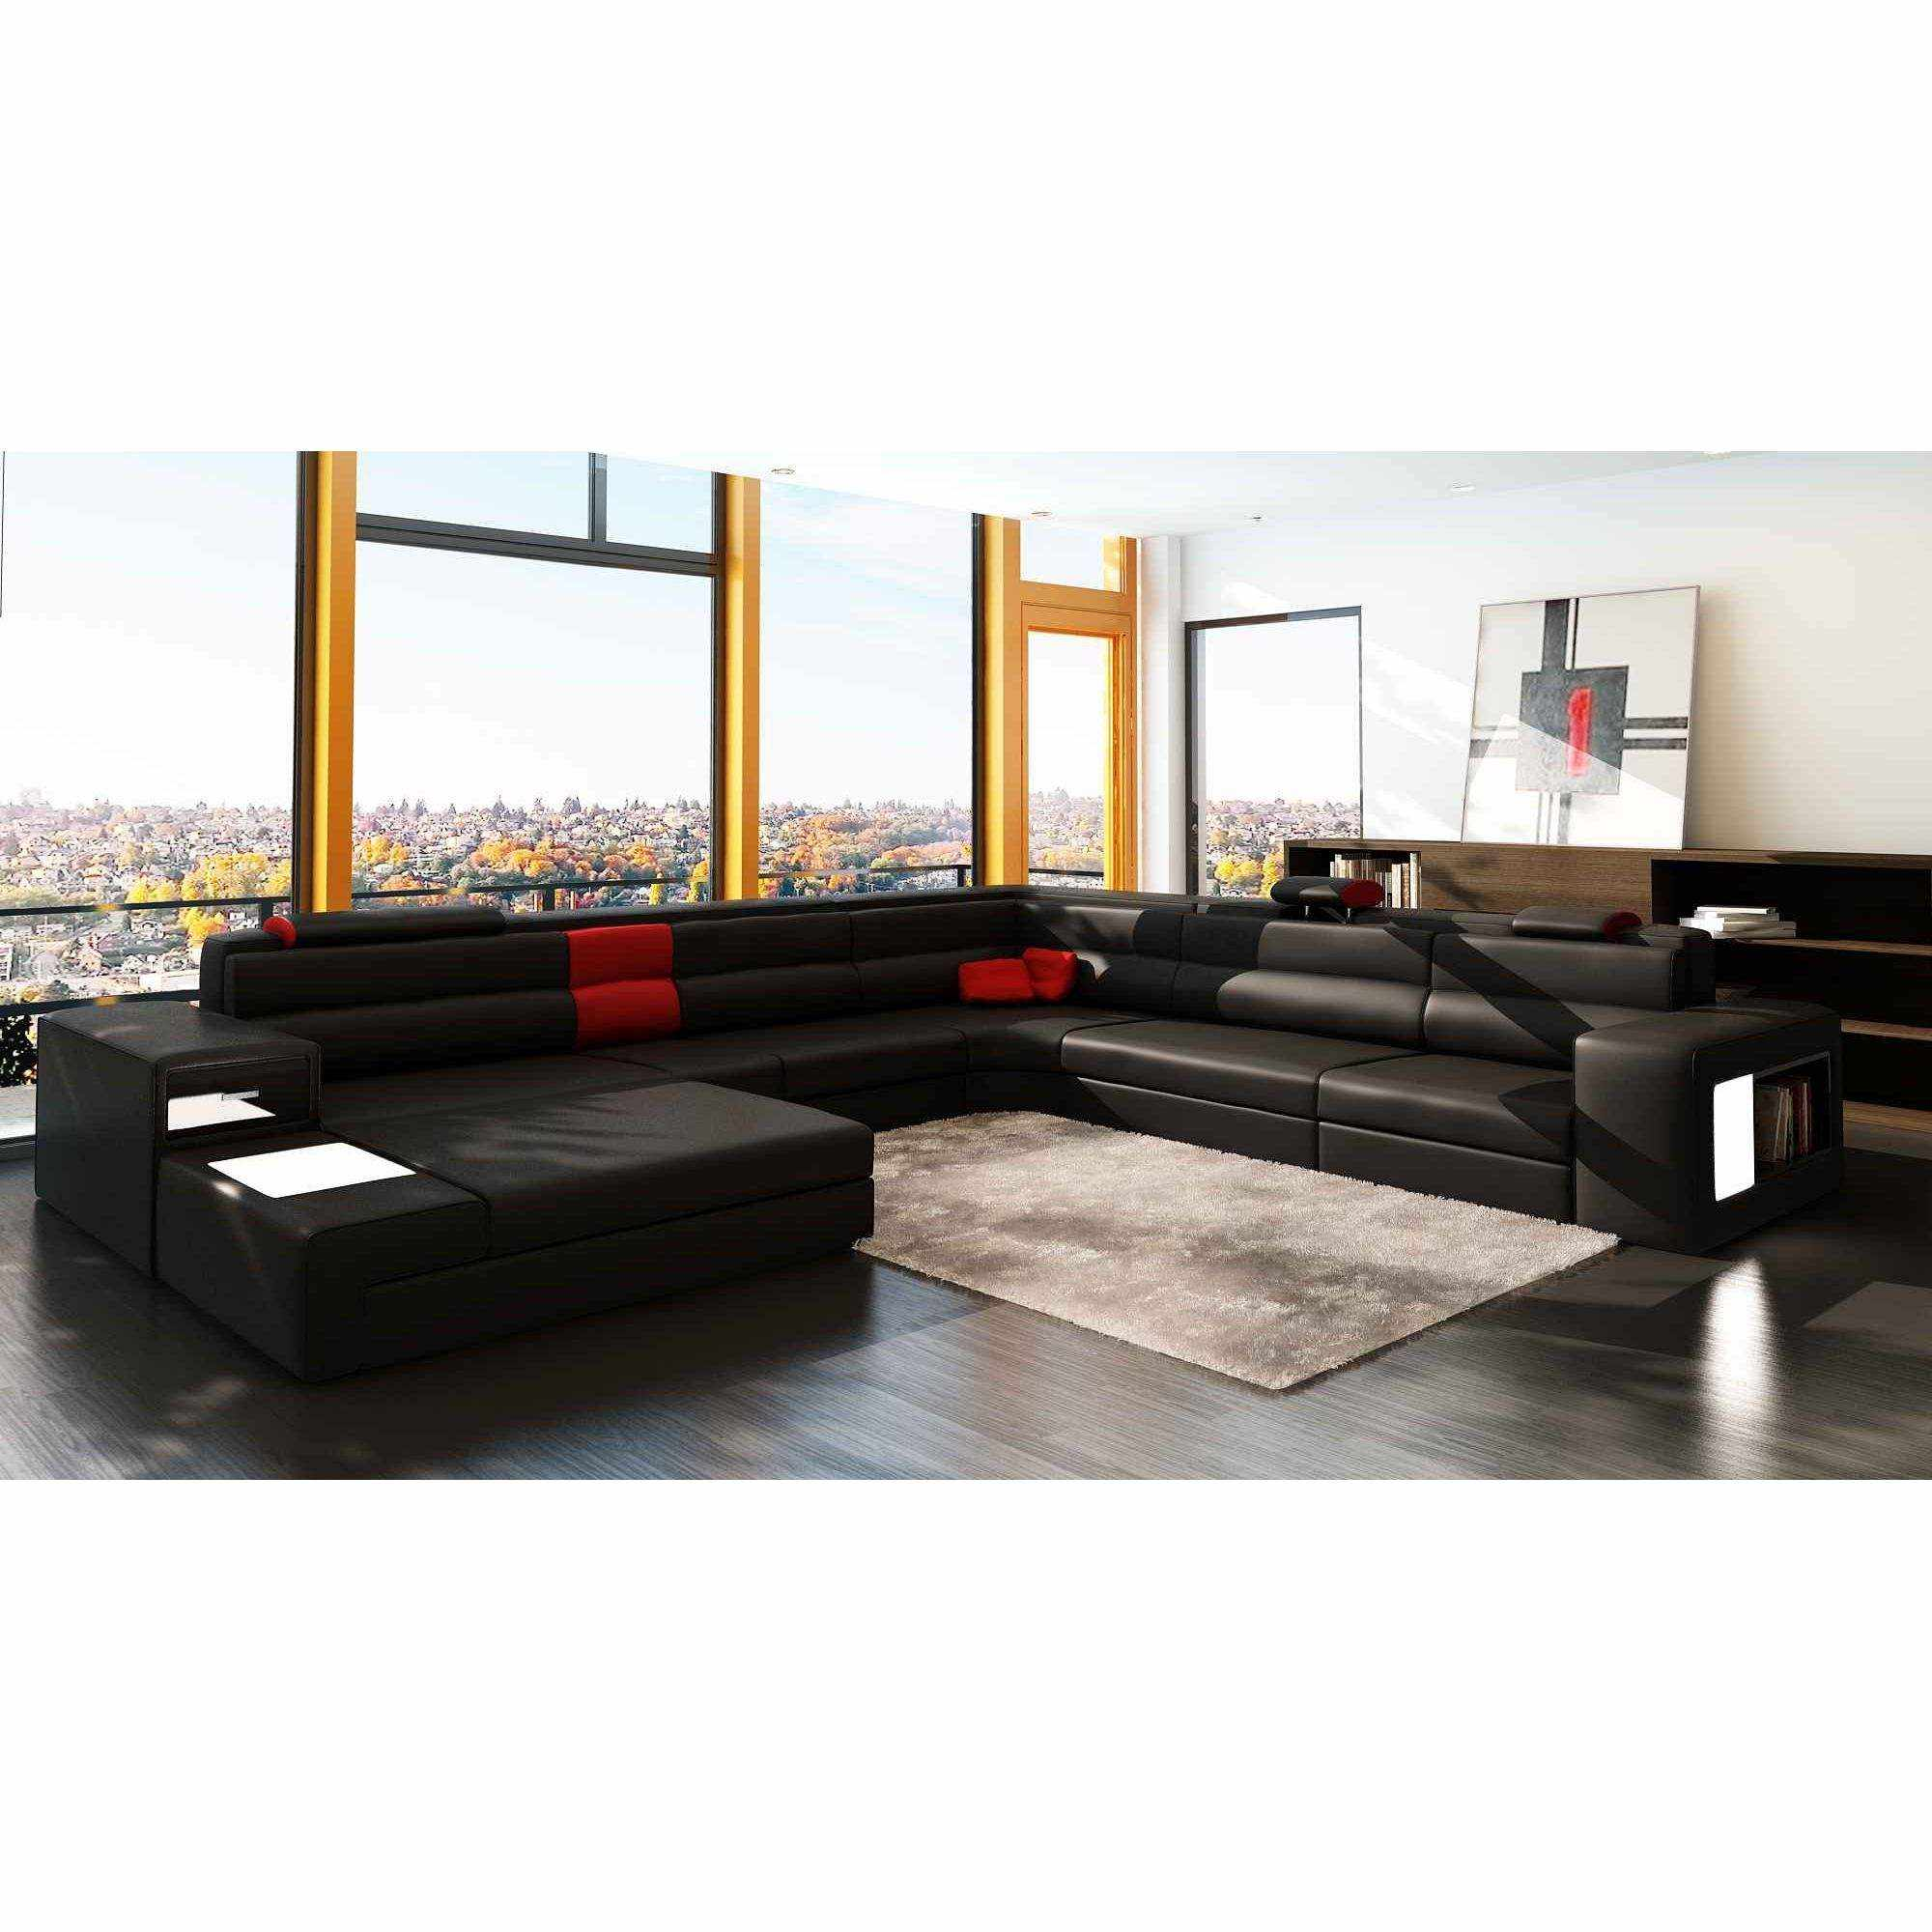 salon canape rouge. Black Bedroom Furniture Sets. Home Design Ideas